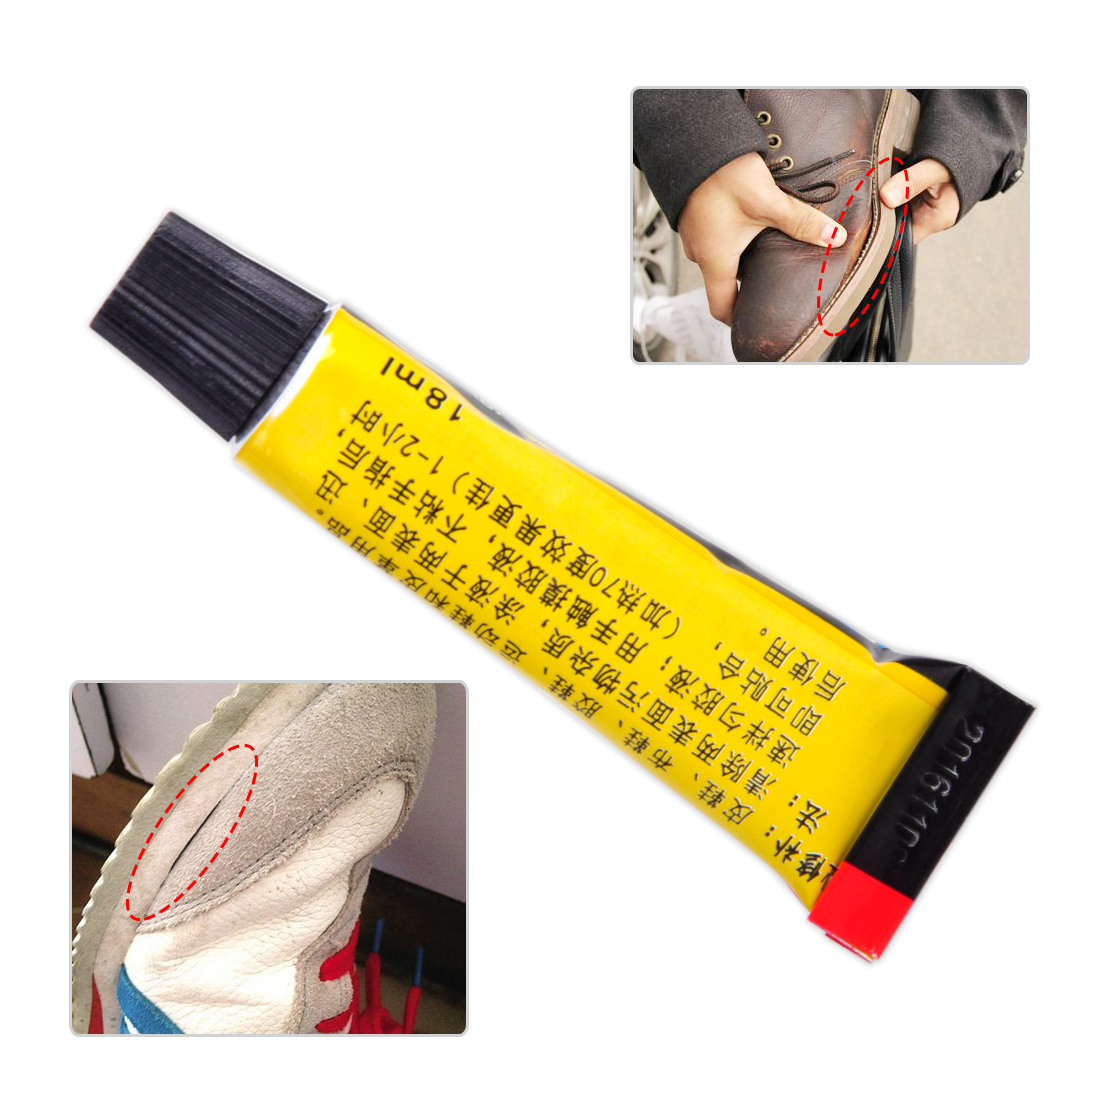 18ml adhesive repair glue for shoe leather rubber